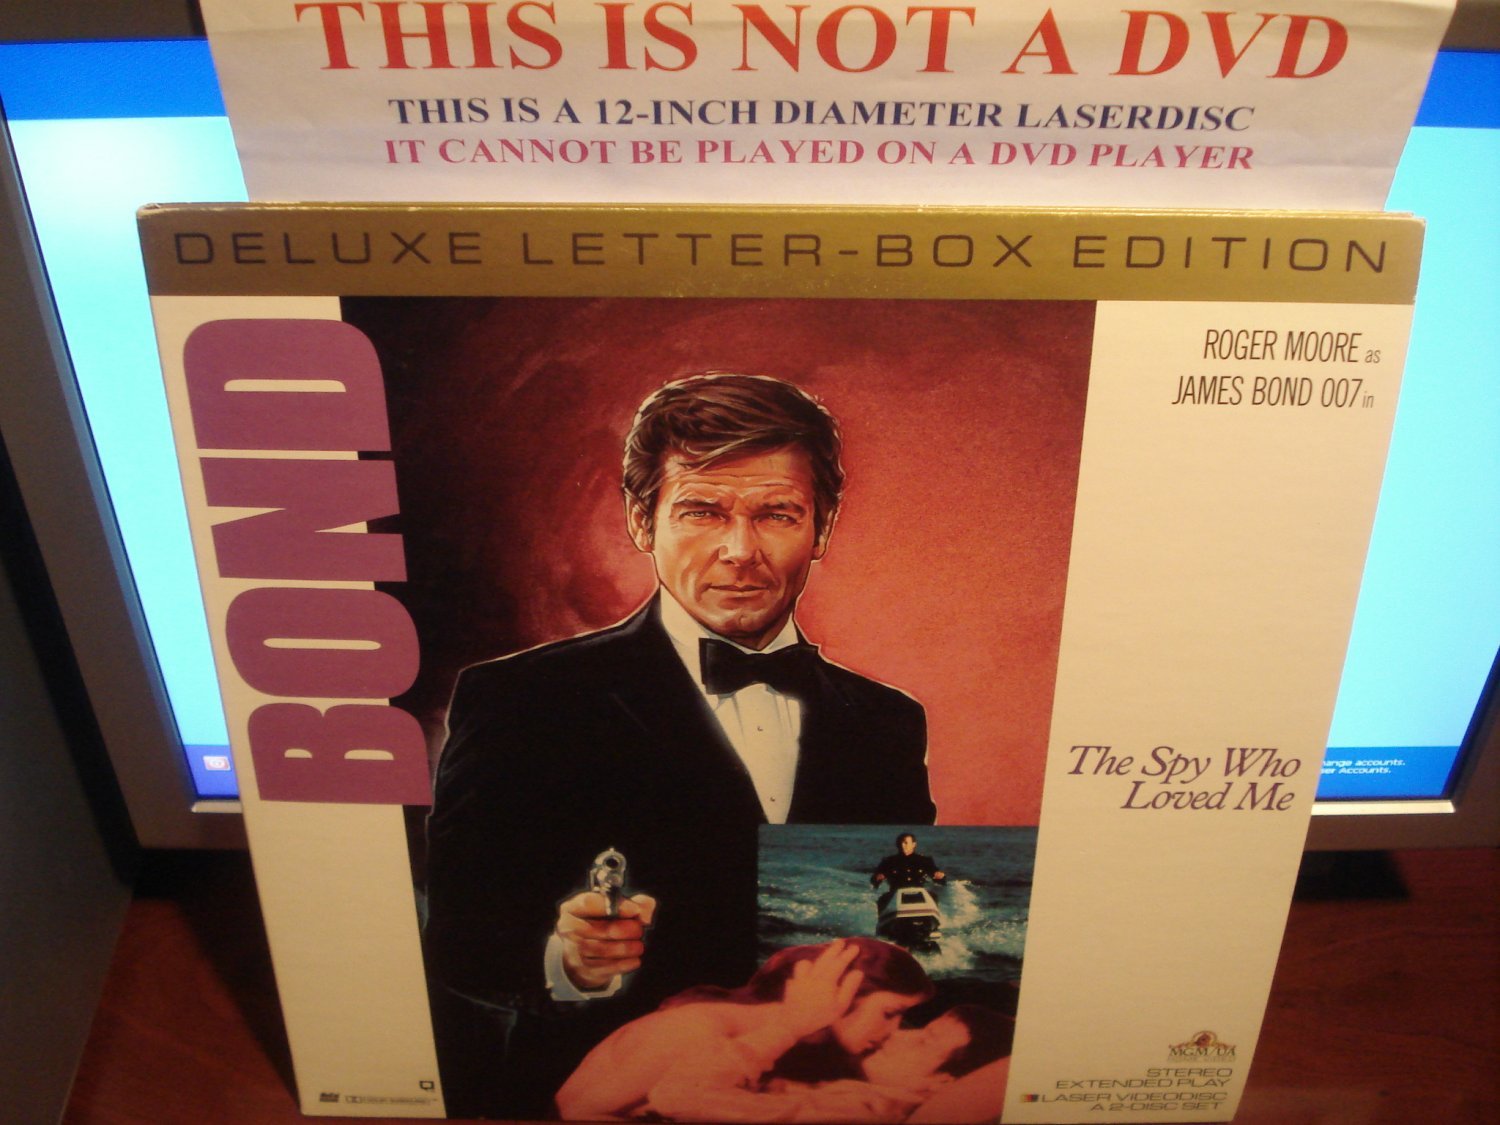 Laserdisc THE SPY WHO LOVED ME (1977) Roger Moore as James Bond 007 Lot#5 DLX LTBX LD